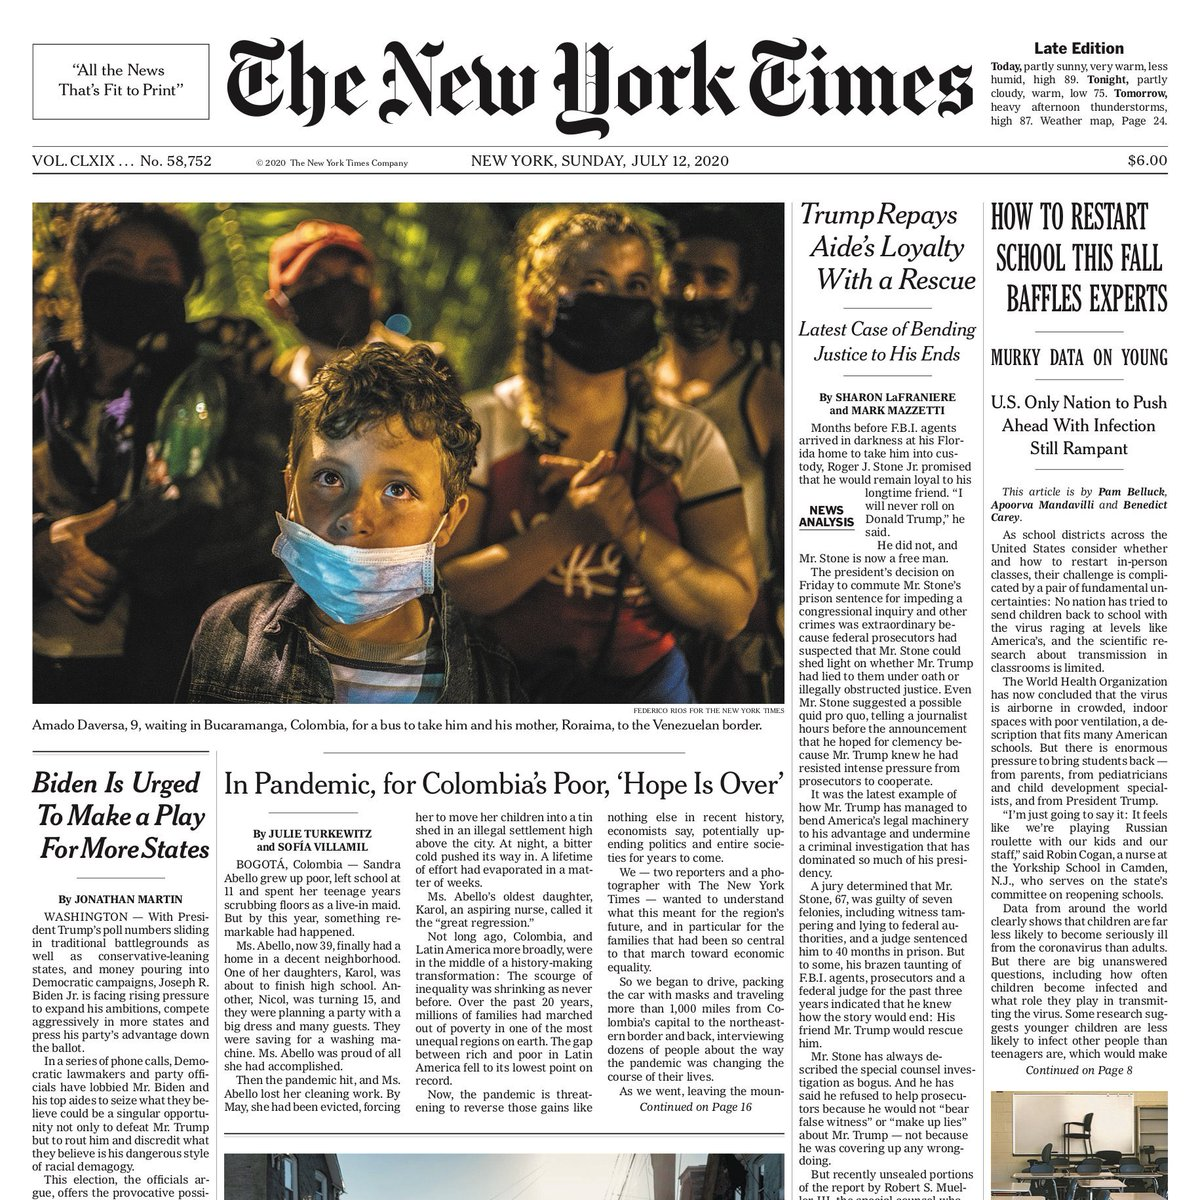 A 9-year-old Venezuelan boy who walked 250 miles across Colombia to get back home to Venezuela is on the cover of today's NYT. He is one of millions of migrants whose lives in new countries have been shattered by the pandemic.